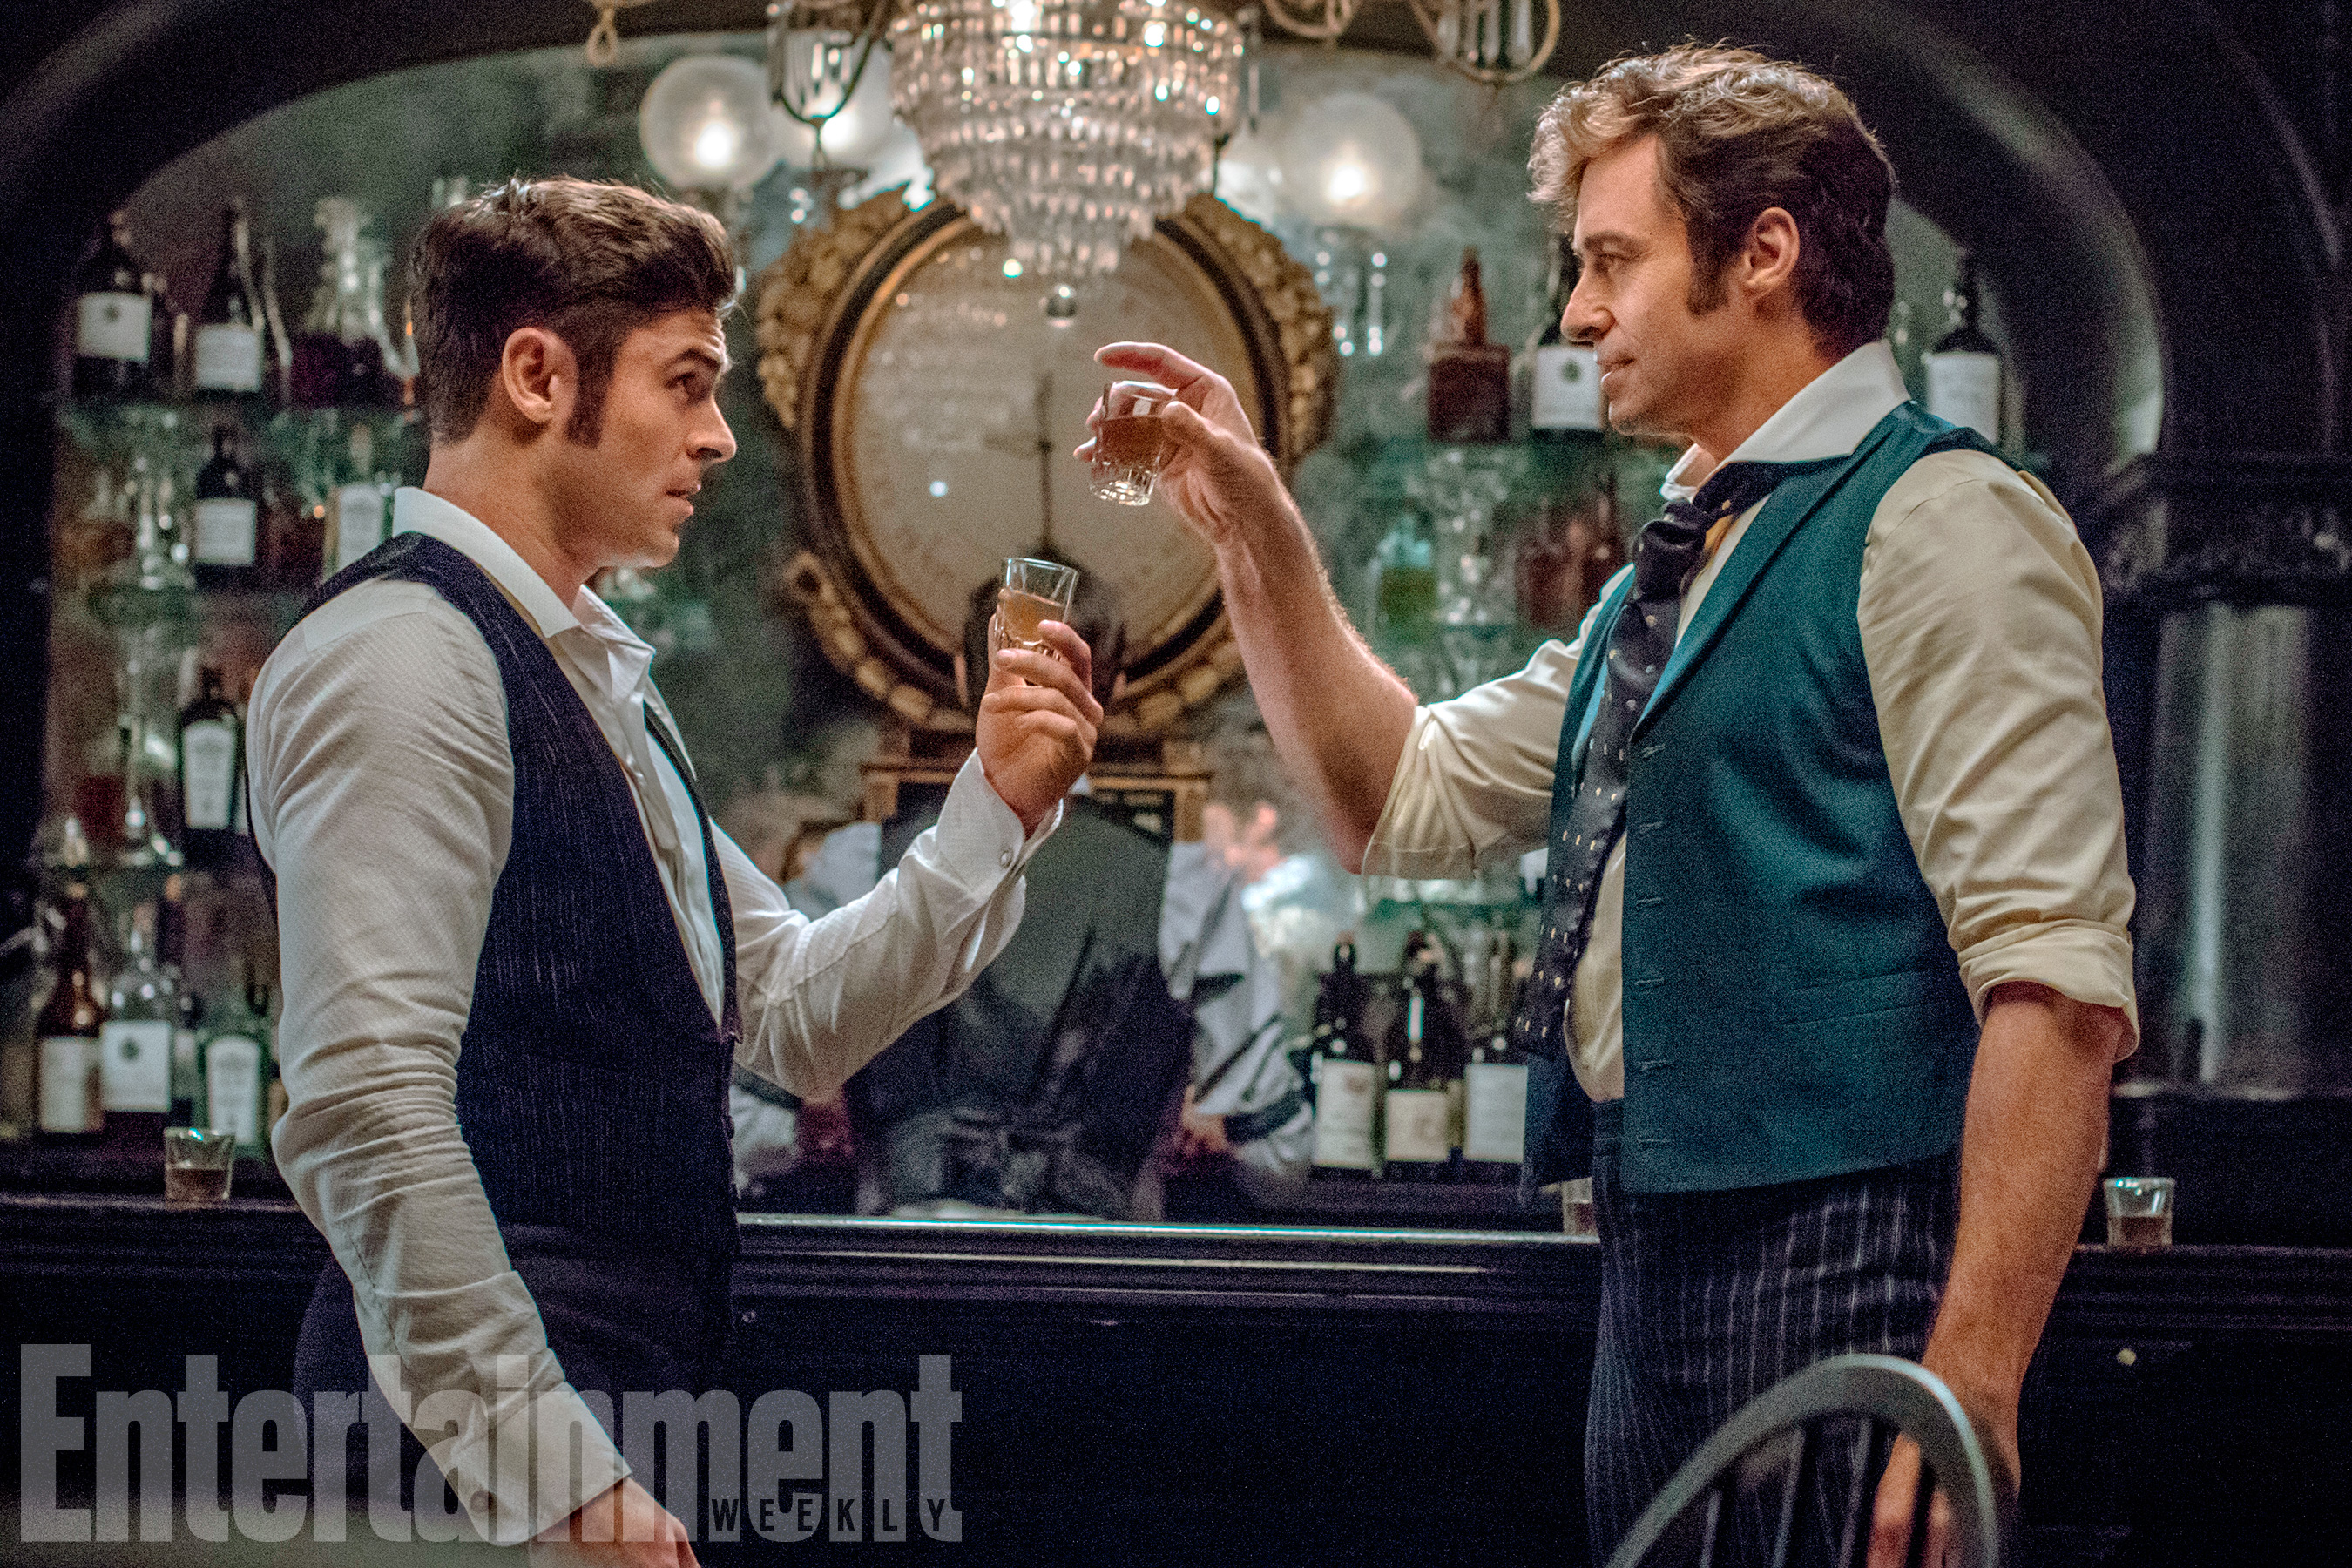 The Greatest Showman (2017)Zac Efron and Hugh Jackman